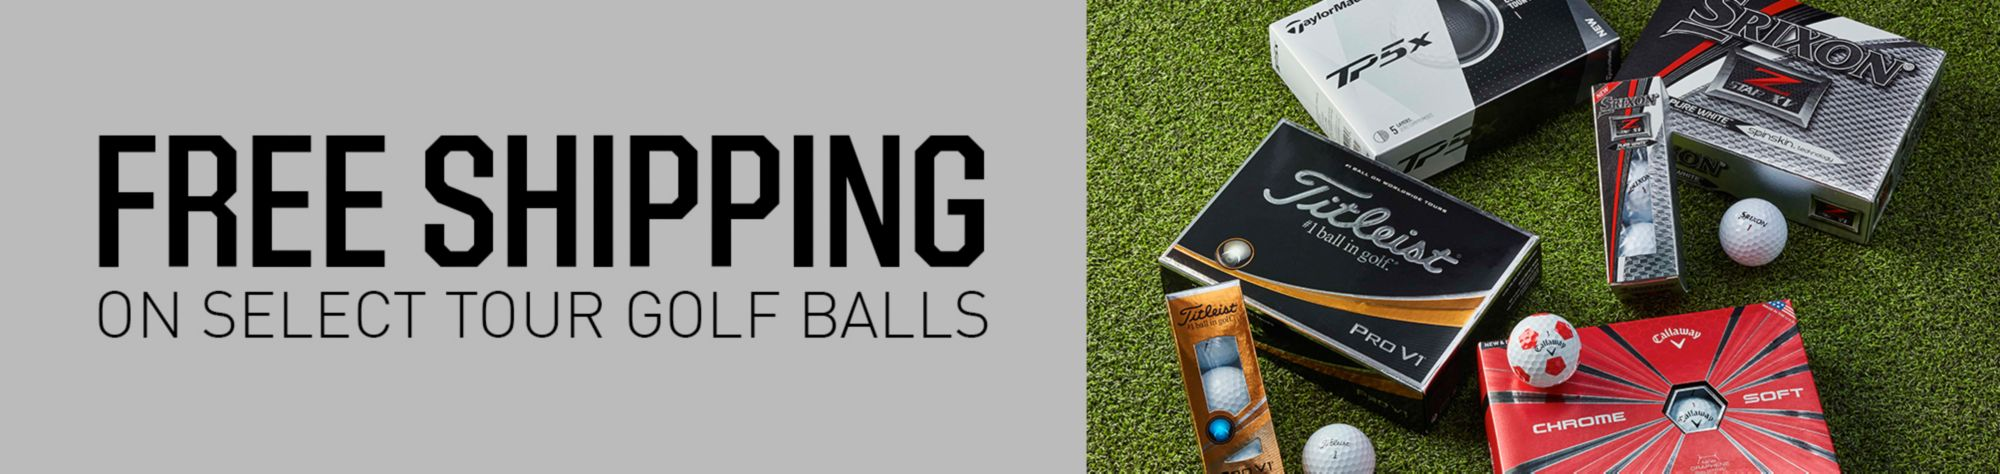 Free Shipping On Select Tour Golf Balls